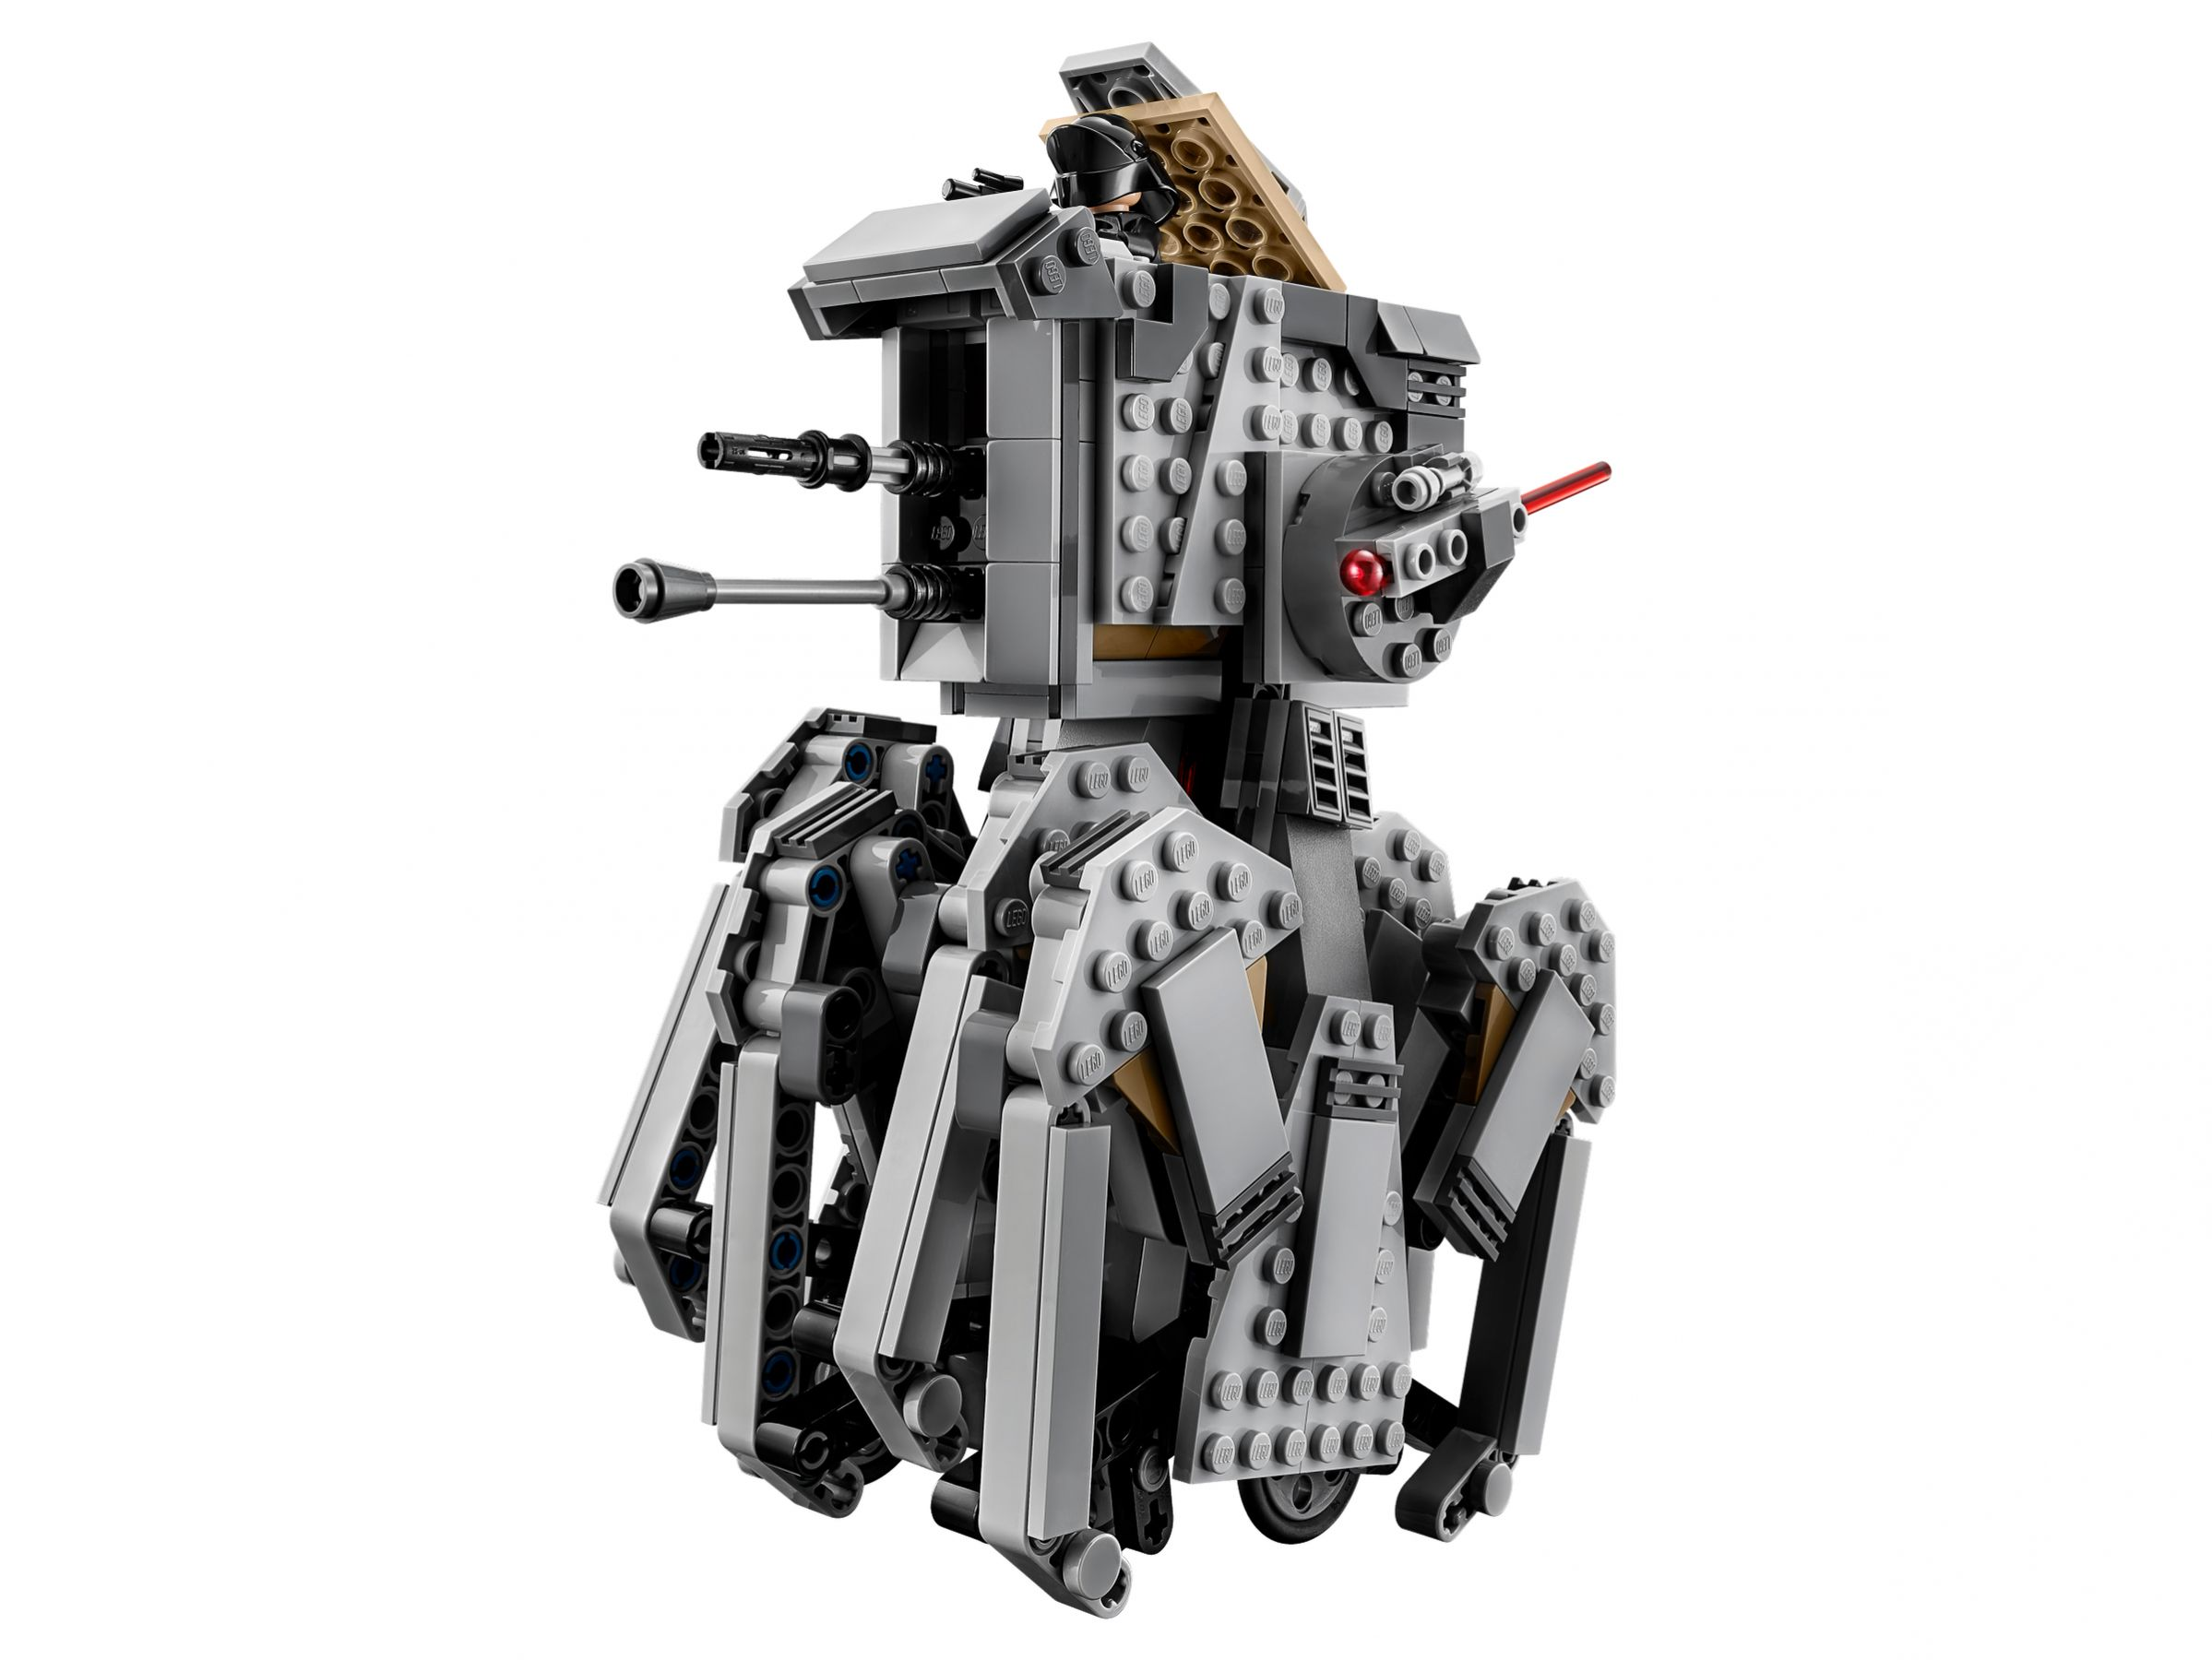 LEGO Star Wars 75177 First Order Heavy Scout Walker™ LEGO_75177_alt2.jpg